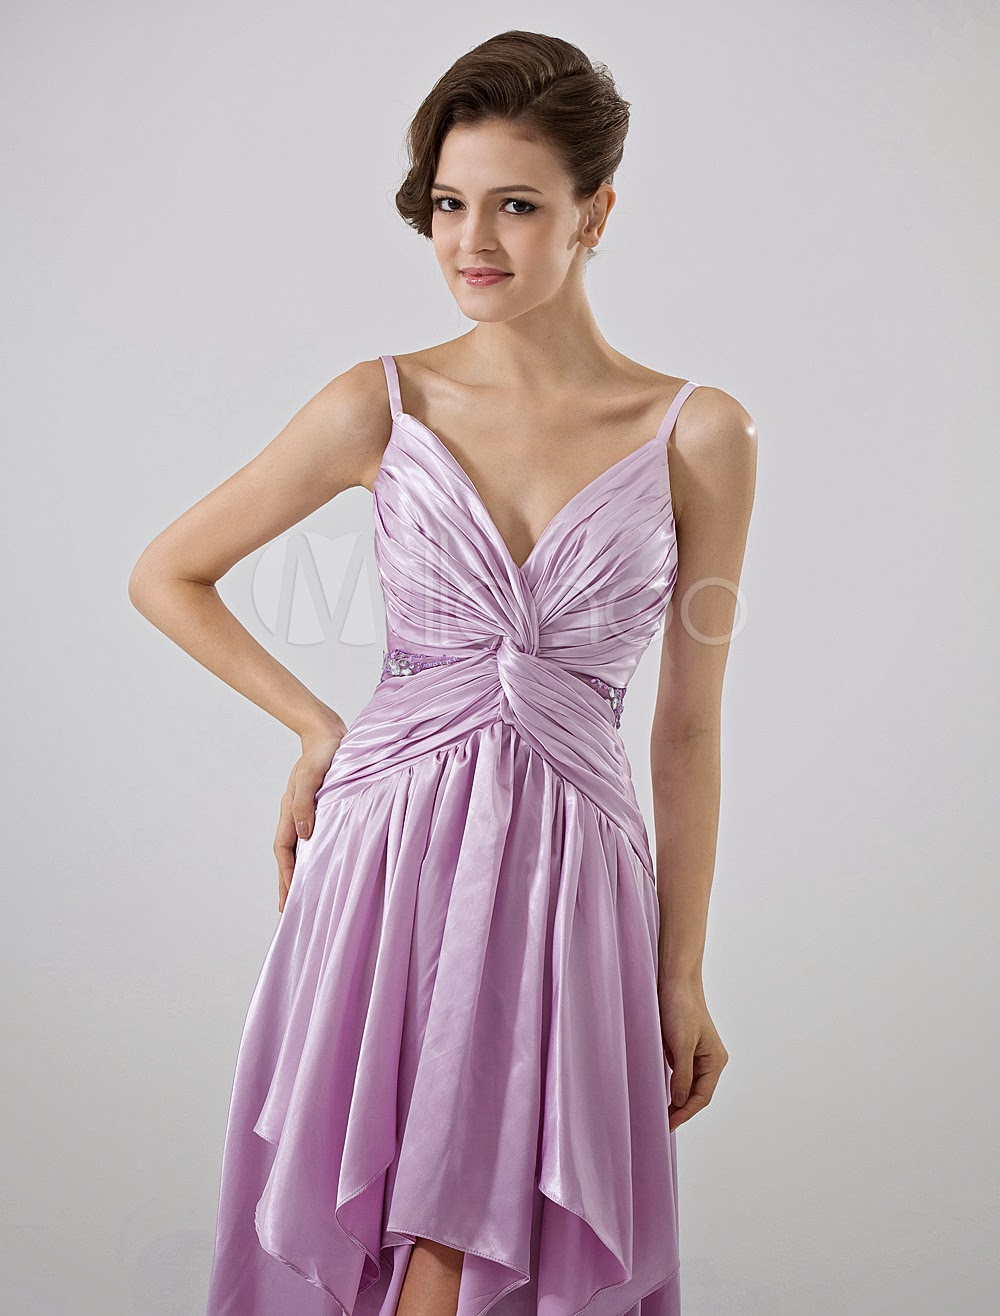 China Wholesale Dresses - Lilac A-line Spaghetti Asymmetrical Hemline Chiffon Homecoming Dress